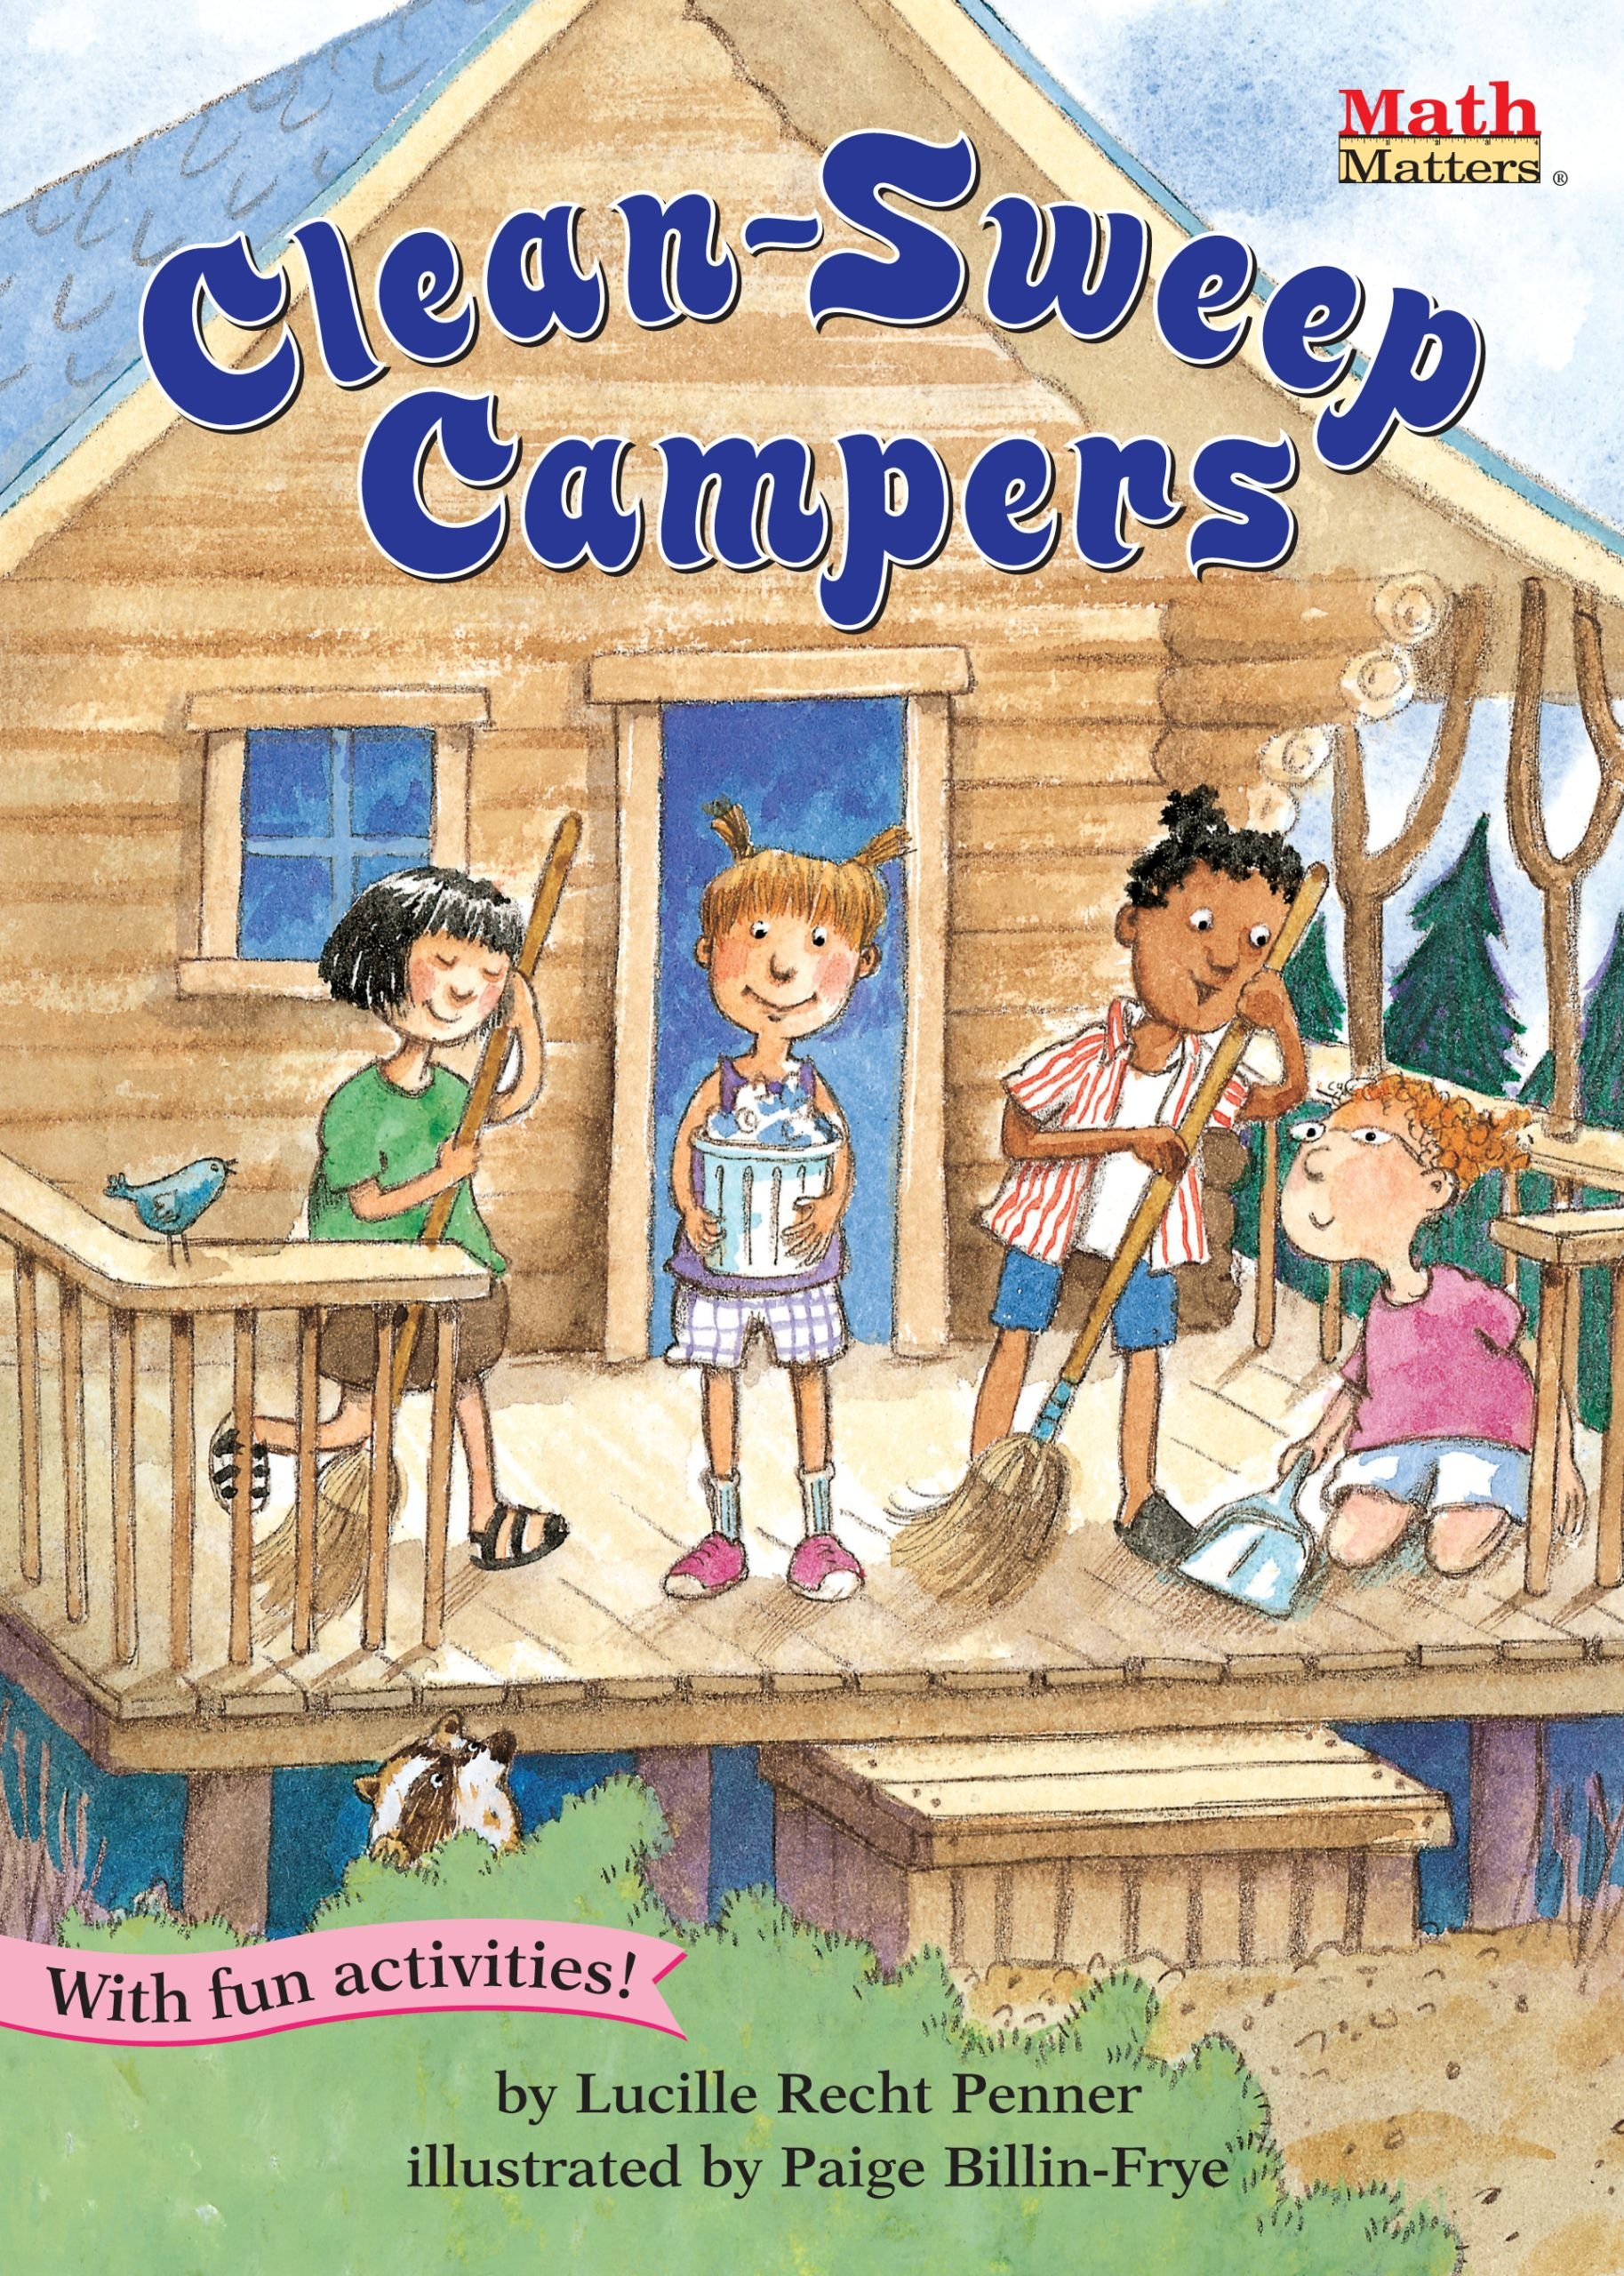 Download Clean Sweep Campers (Fall 2000 Fact Sheet for Math Matters -- Math Matters AE Series) PDF